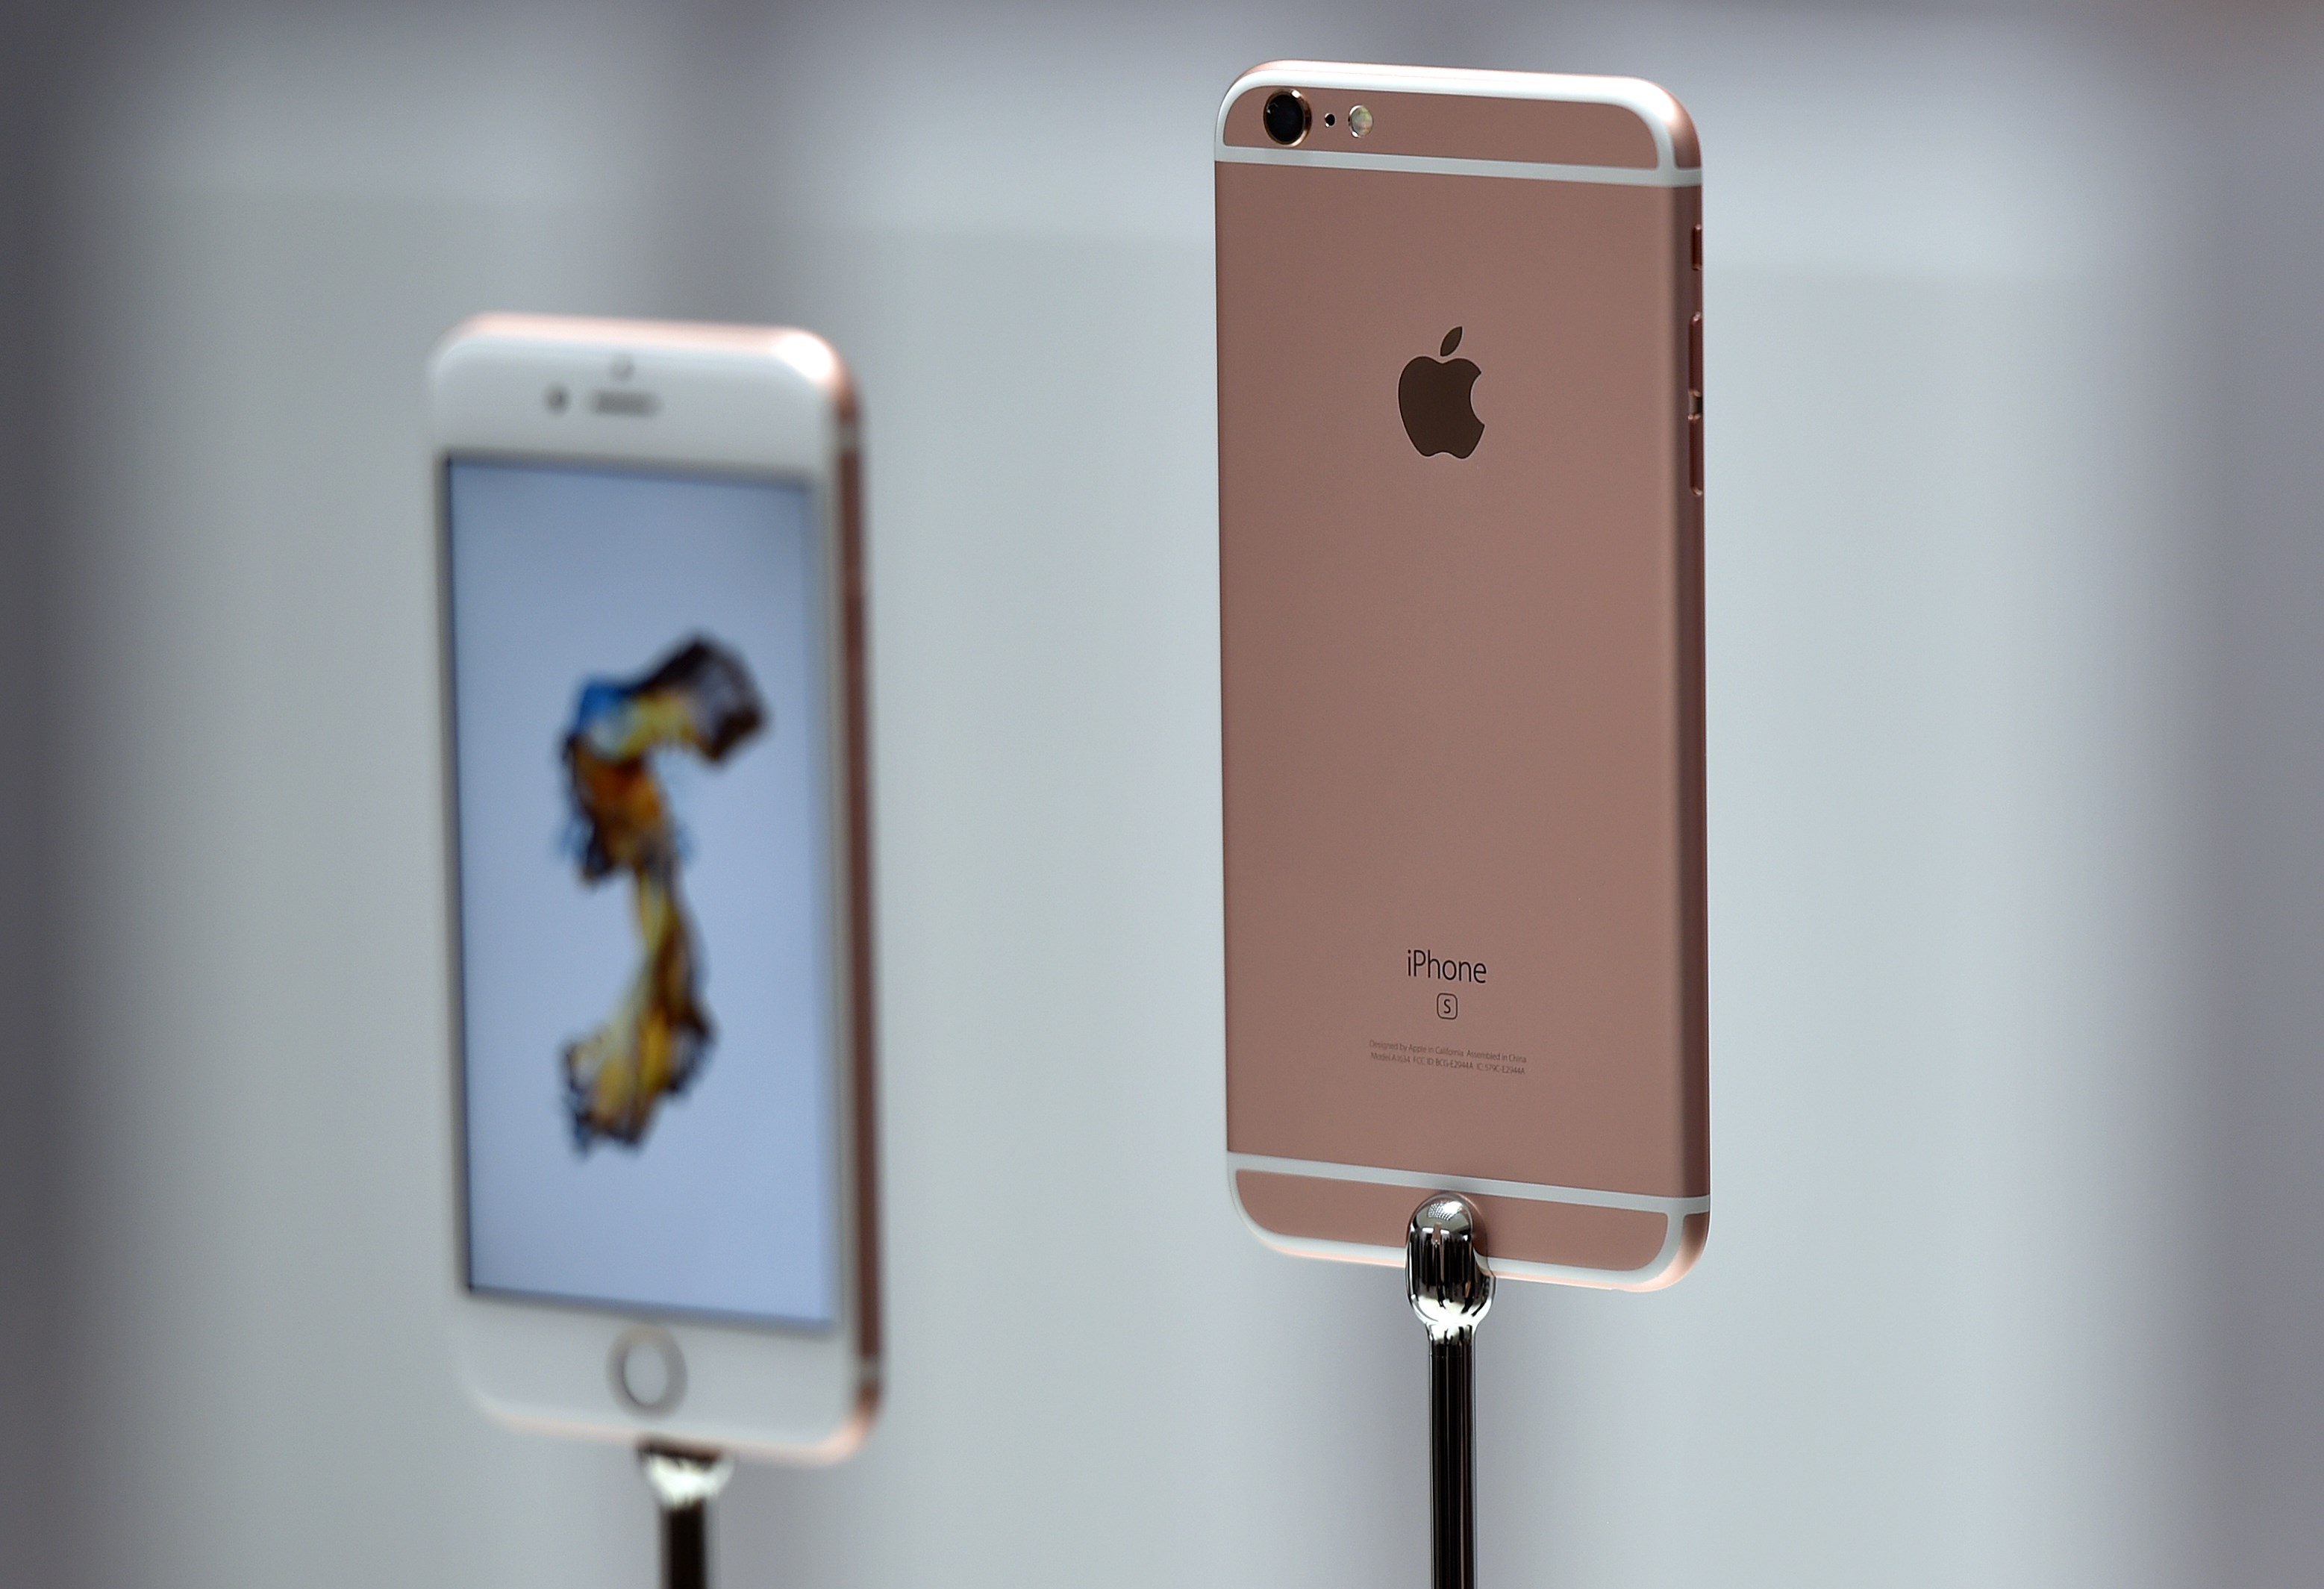 New models of the iPhone 6s are seen displayed during an Apple media event in San Francisco, California on September 9, 2015.